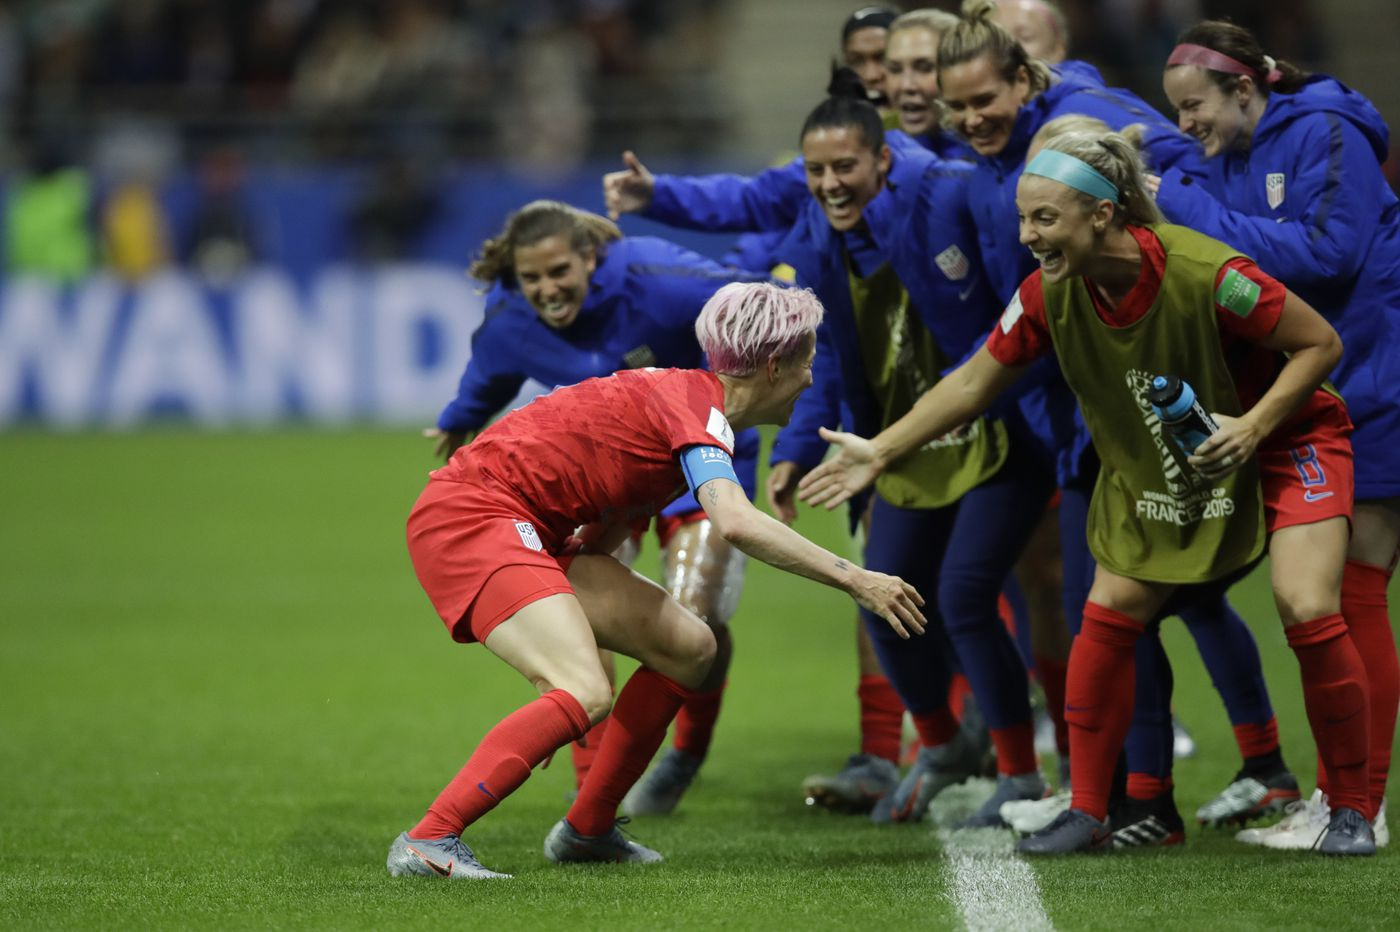 USWNT catches heat for World Cup goal celebrations, and fires back